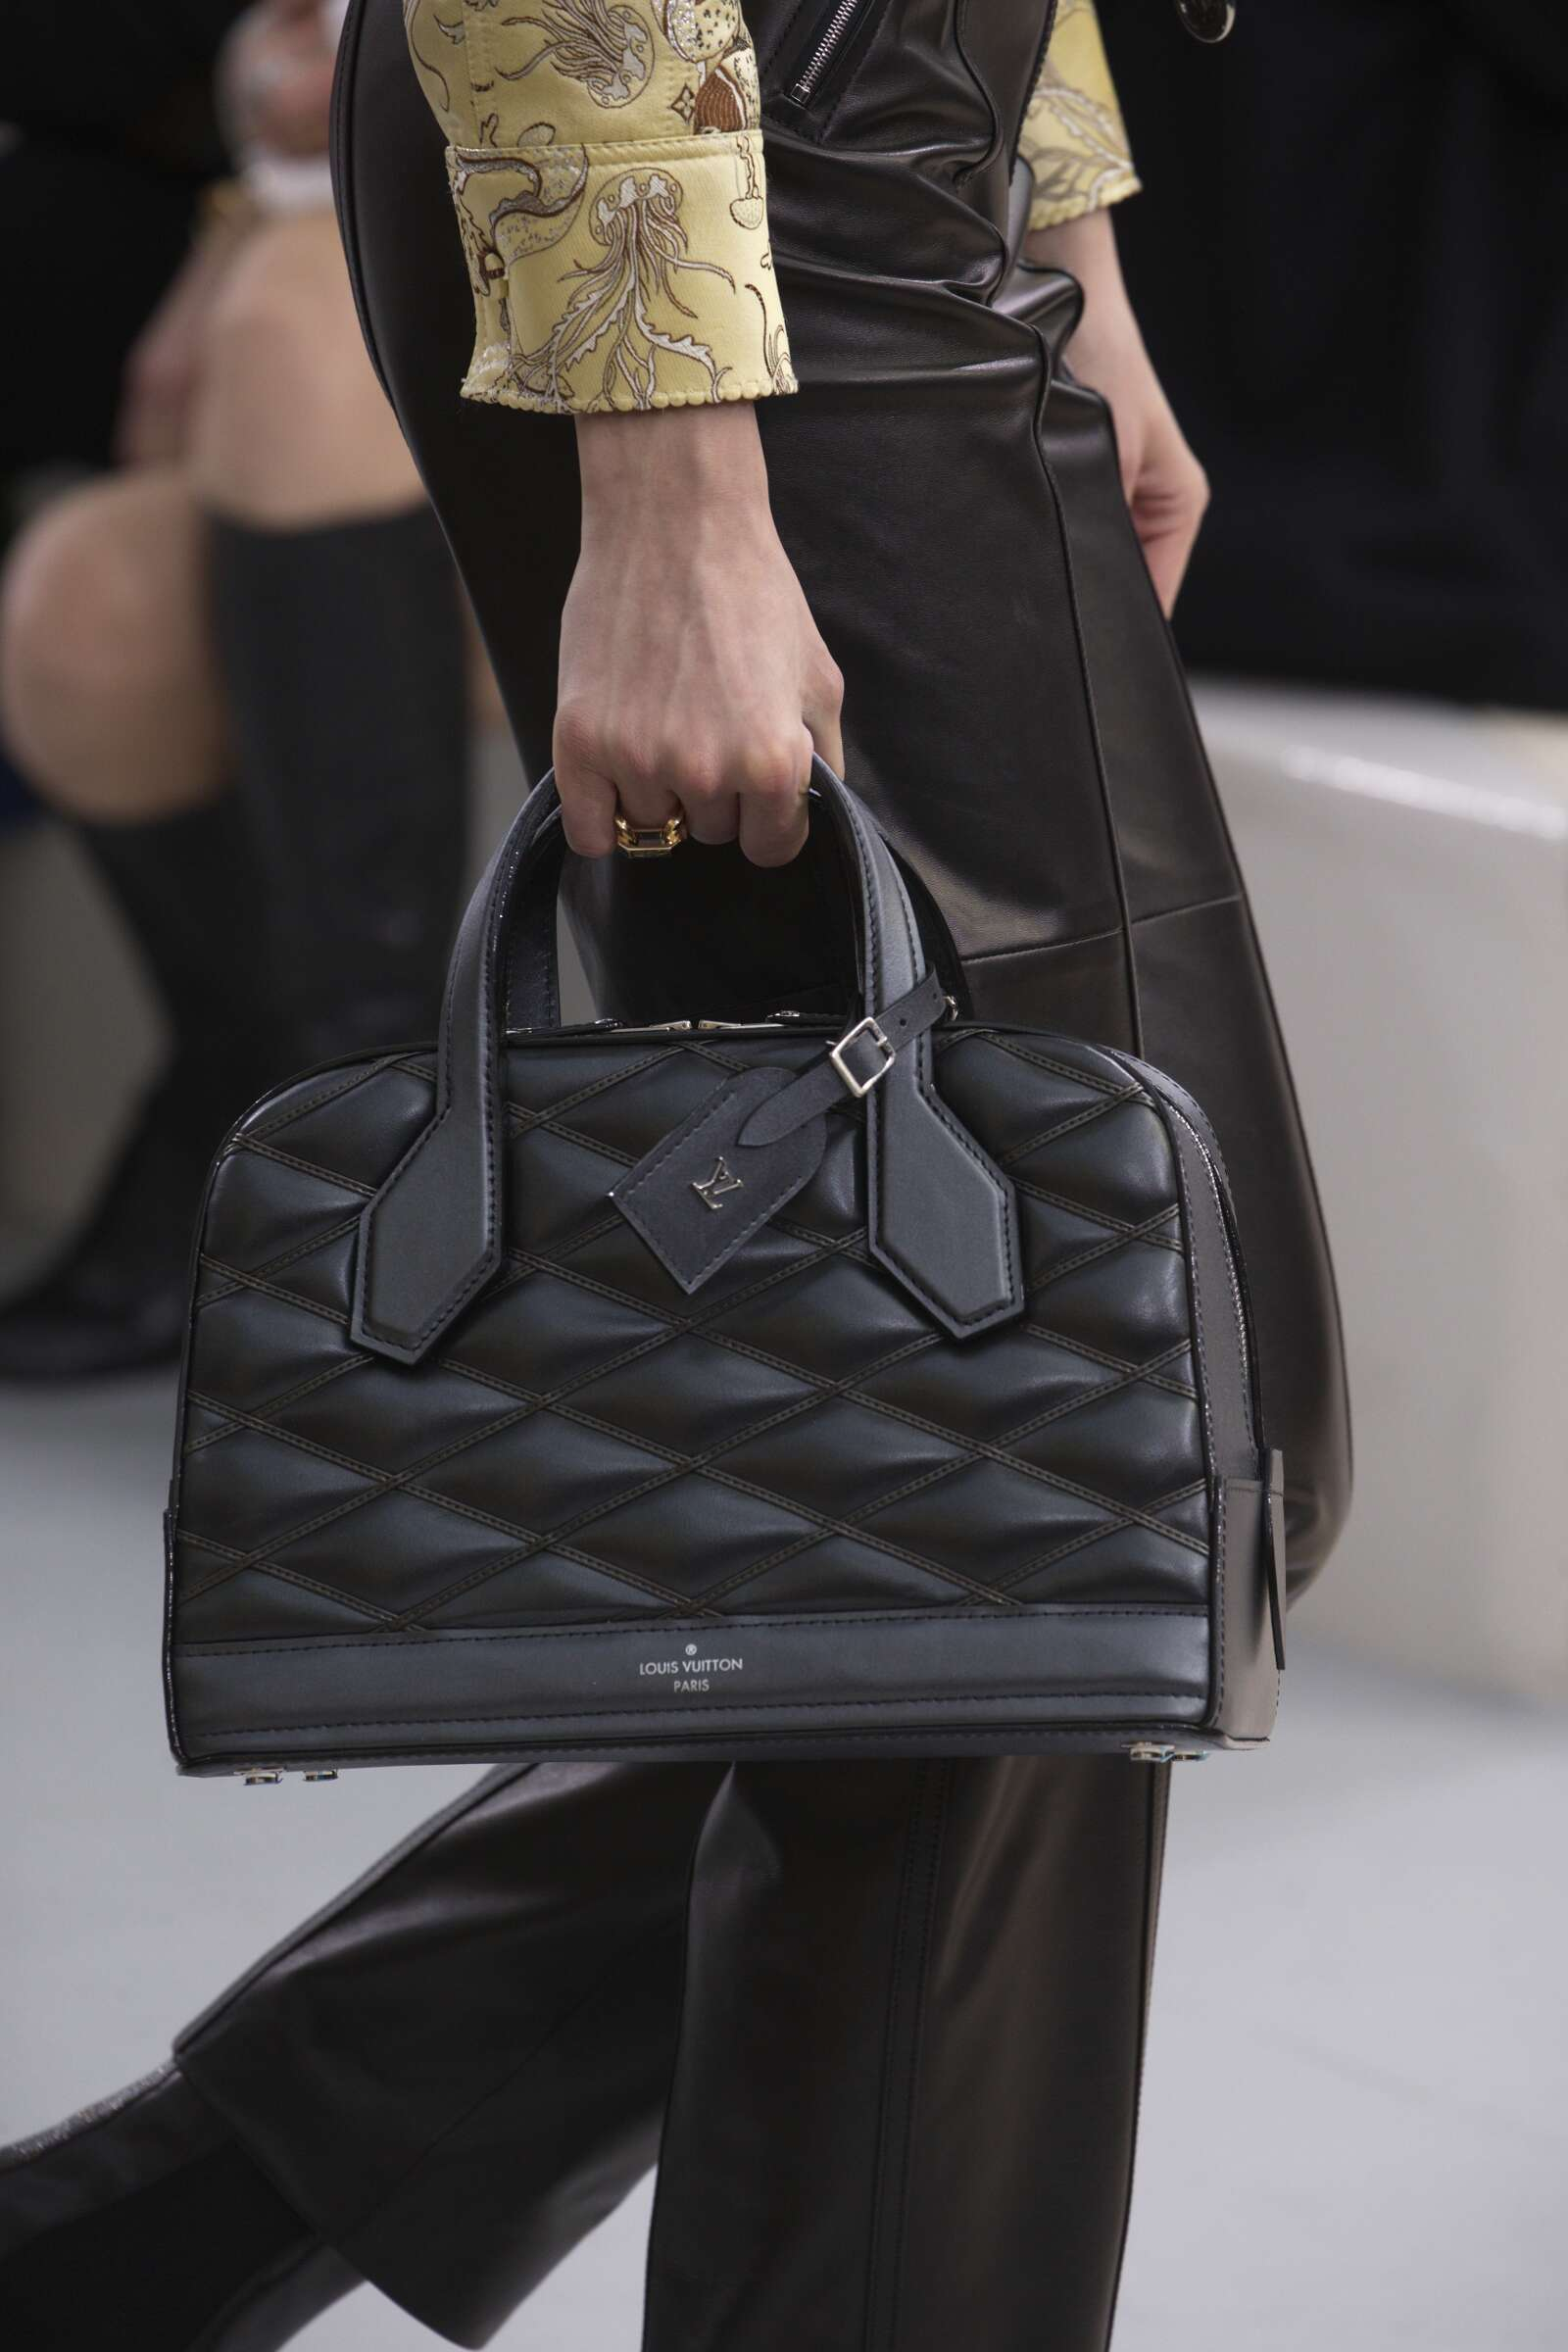 Fashion Show FW 2015 2016 Louis Vuitton Bag Details Womenswear